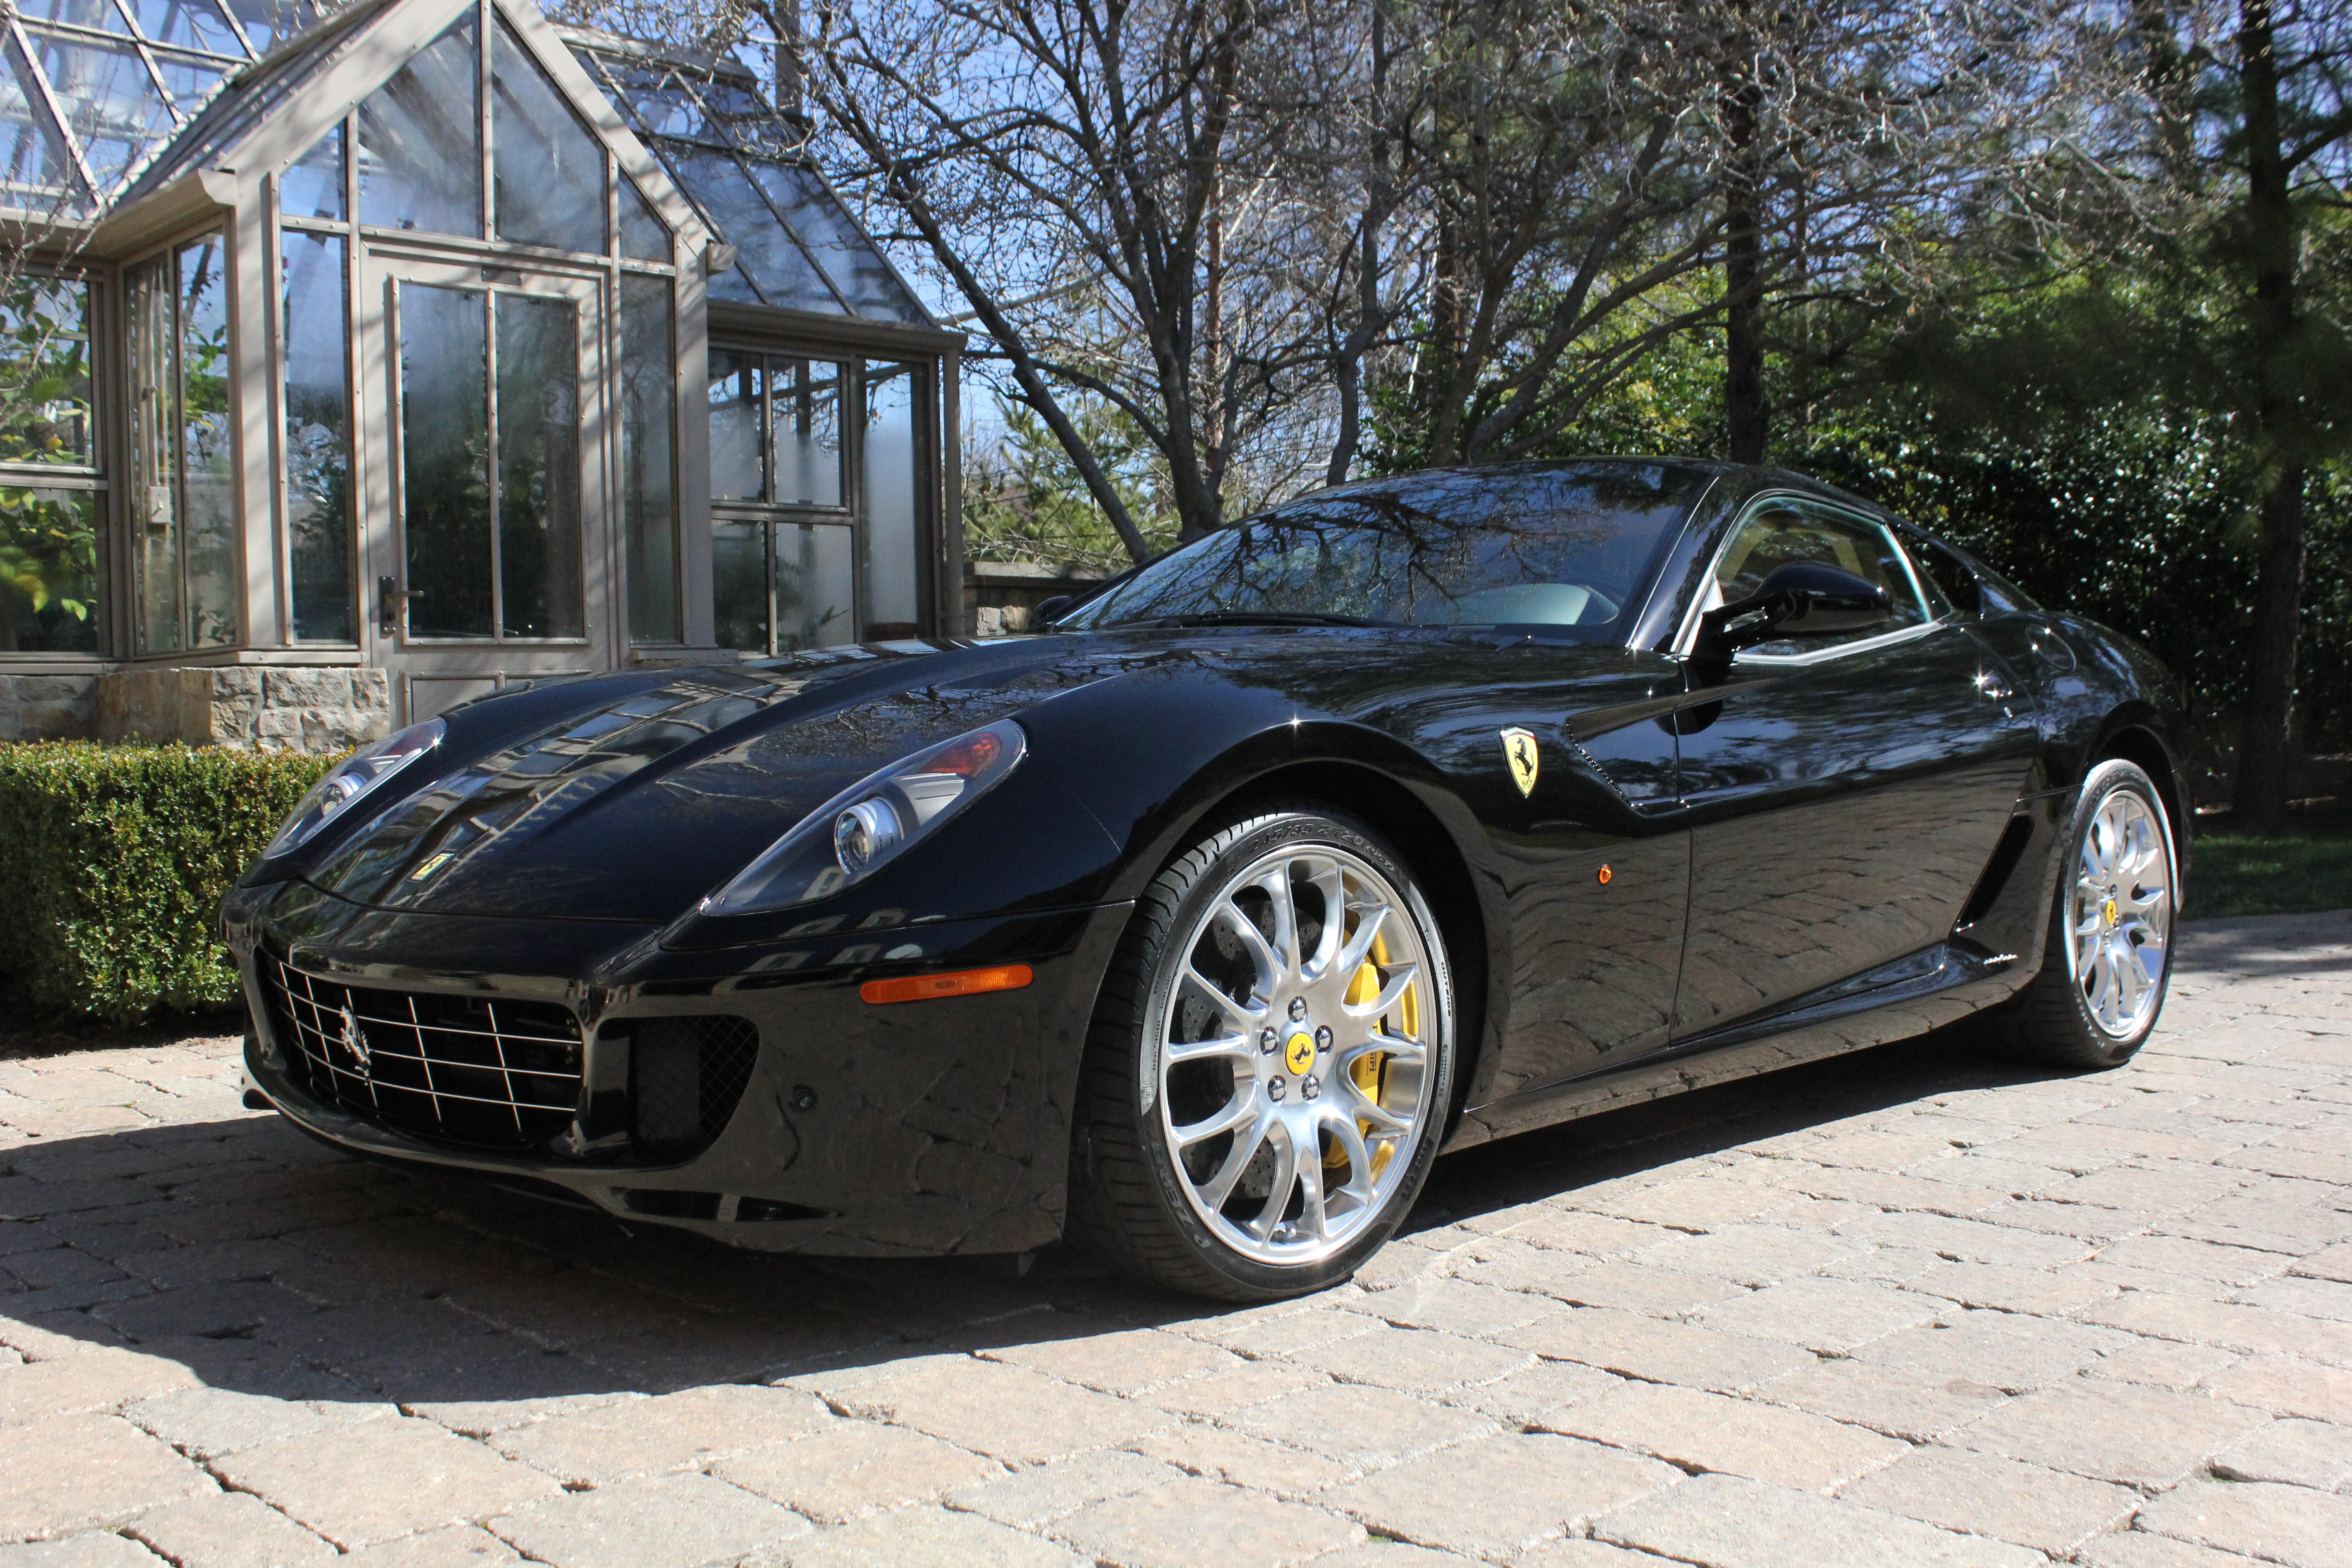 hertz oxford of trans a in chancellor day rent uk for the ferrari groupon vice criticised car university house deal s